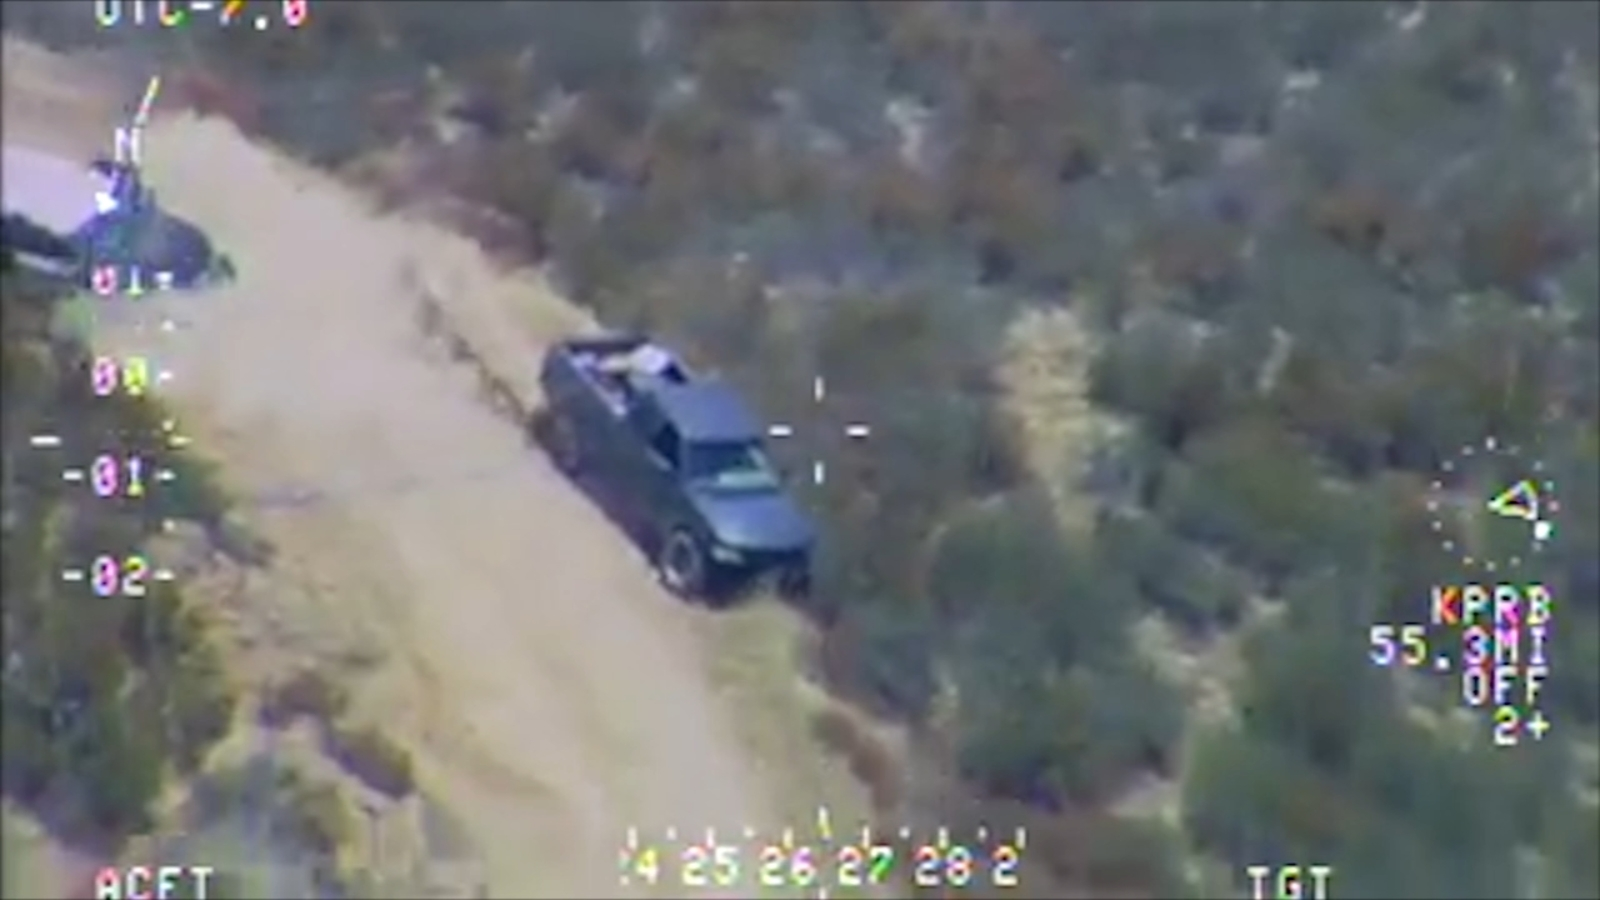 Caught on camera: Suspect in stolen vehicle leads SLO CHP officers on high-speed chase